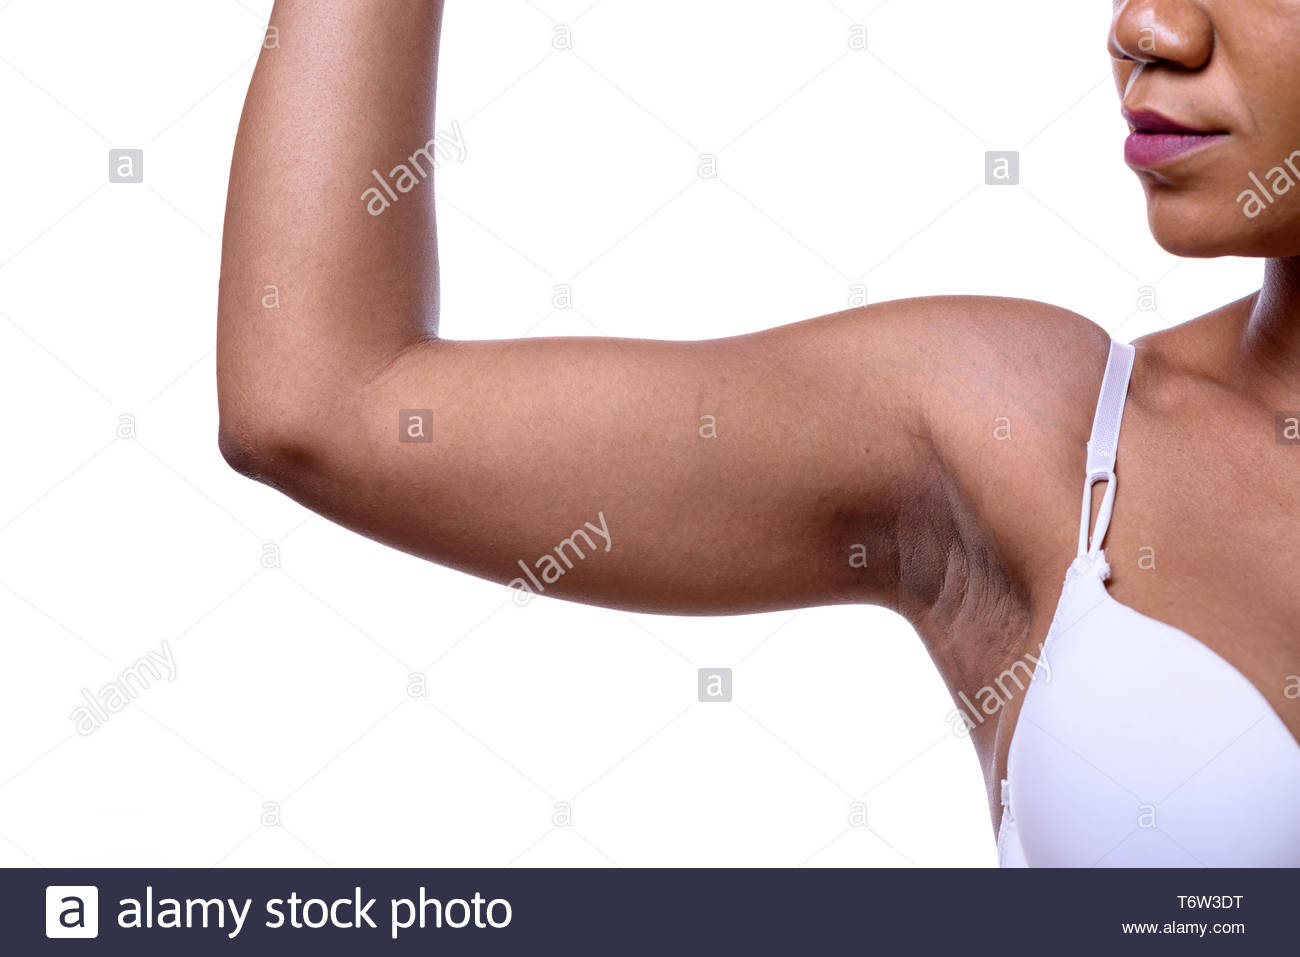 Bare shoulder and arm bent of a woman - Stock Image